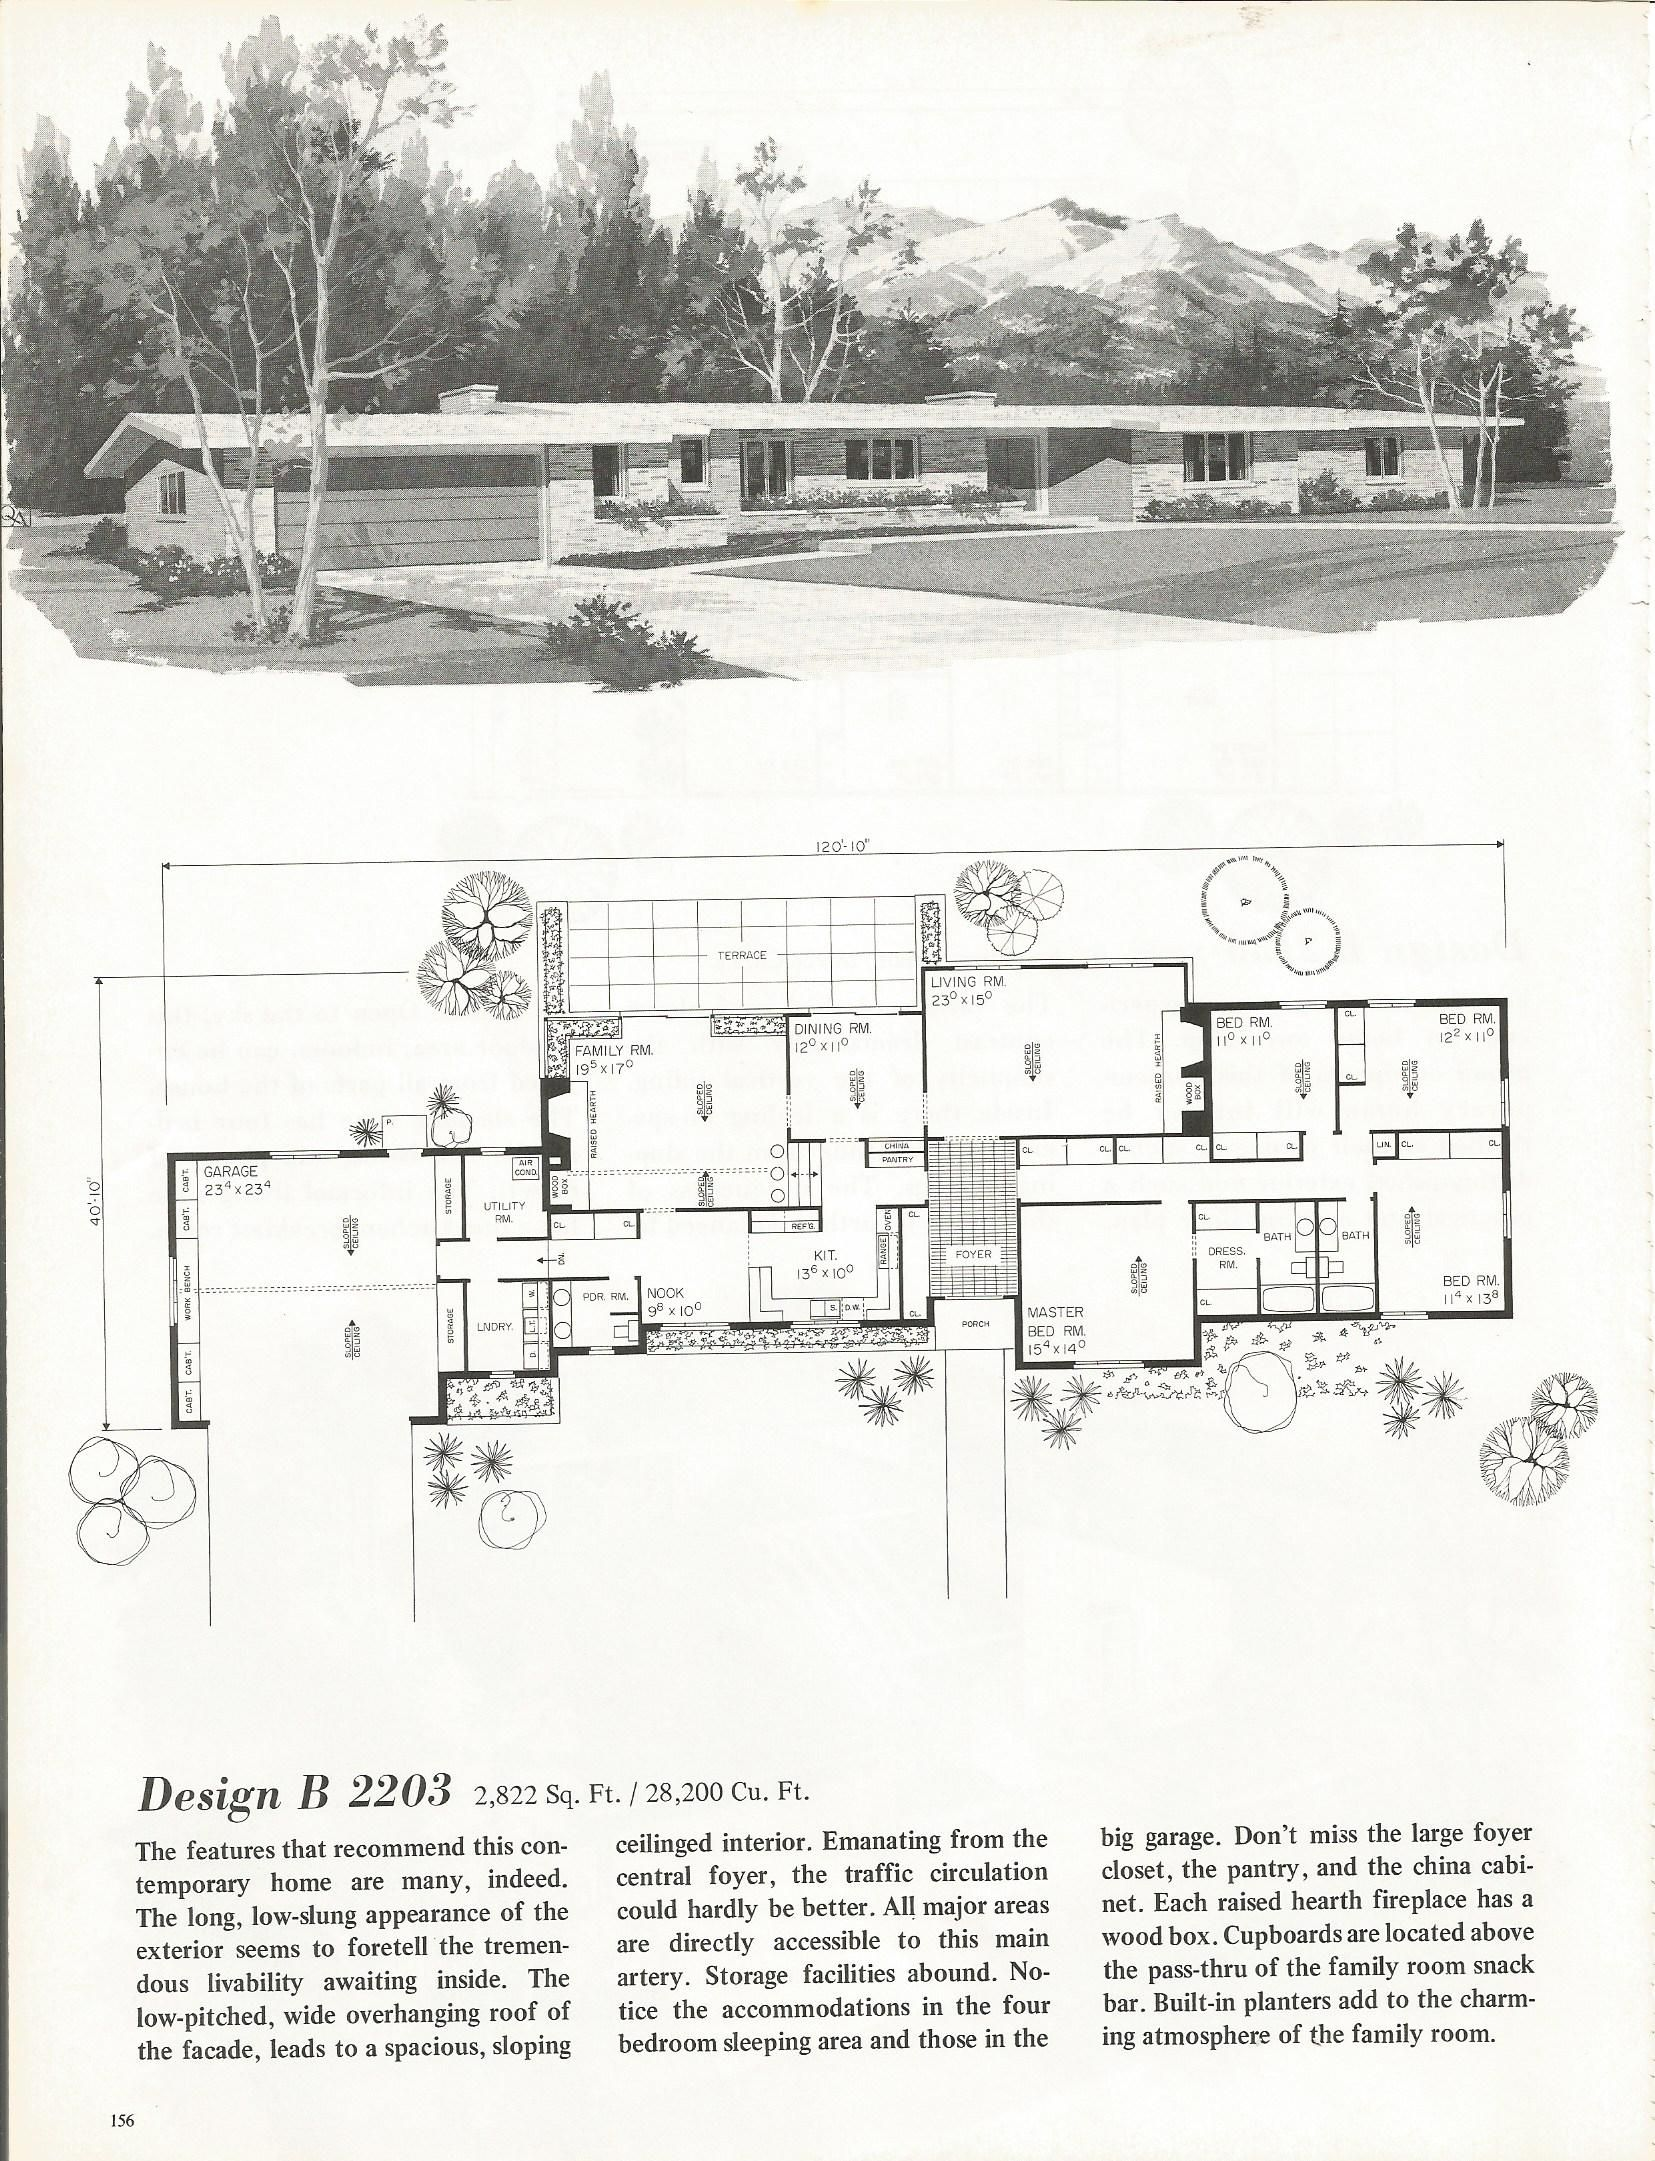 Vintage House Plans 2203 Mid Century Modern House Plans Vintage House Plans Mid Modern House